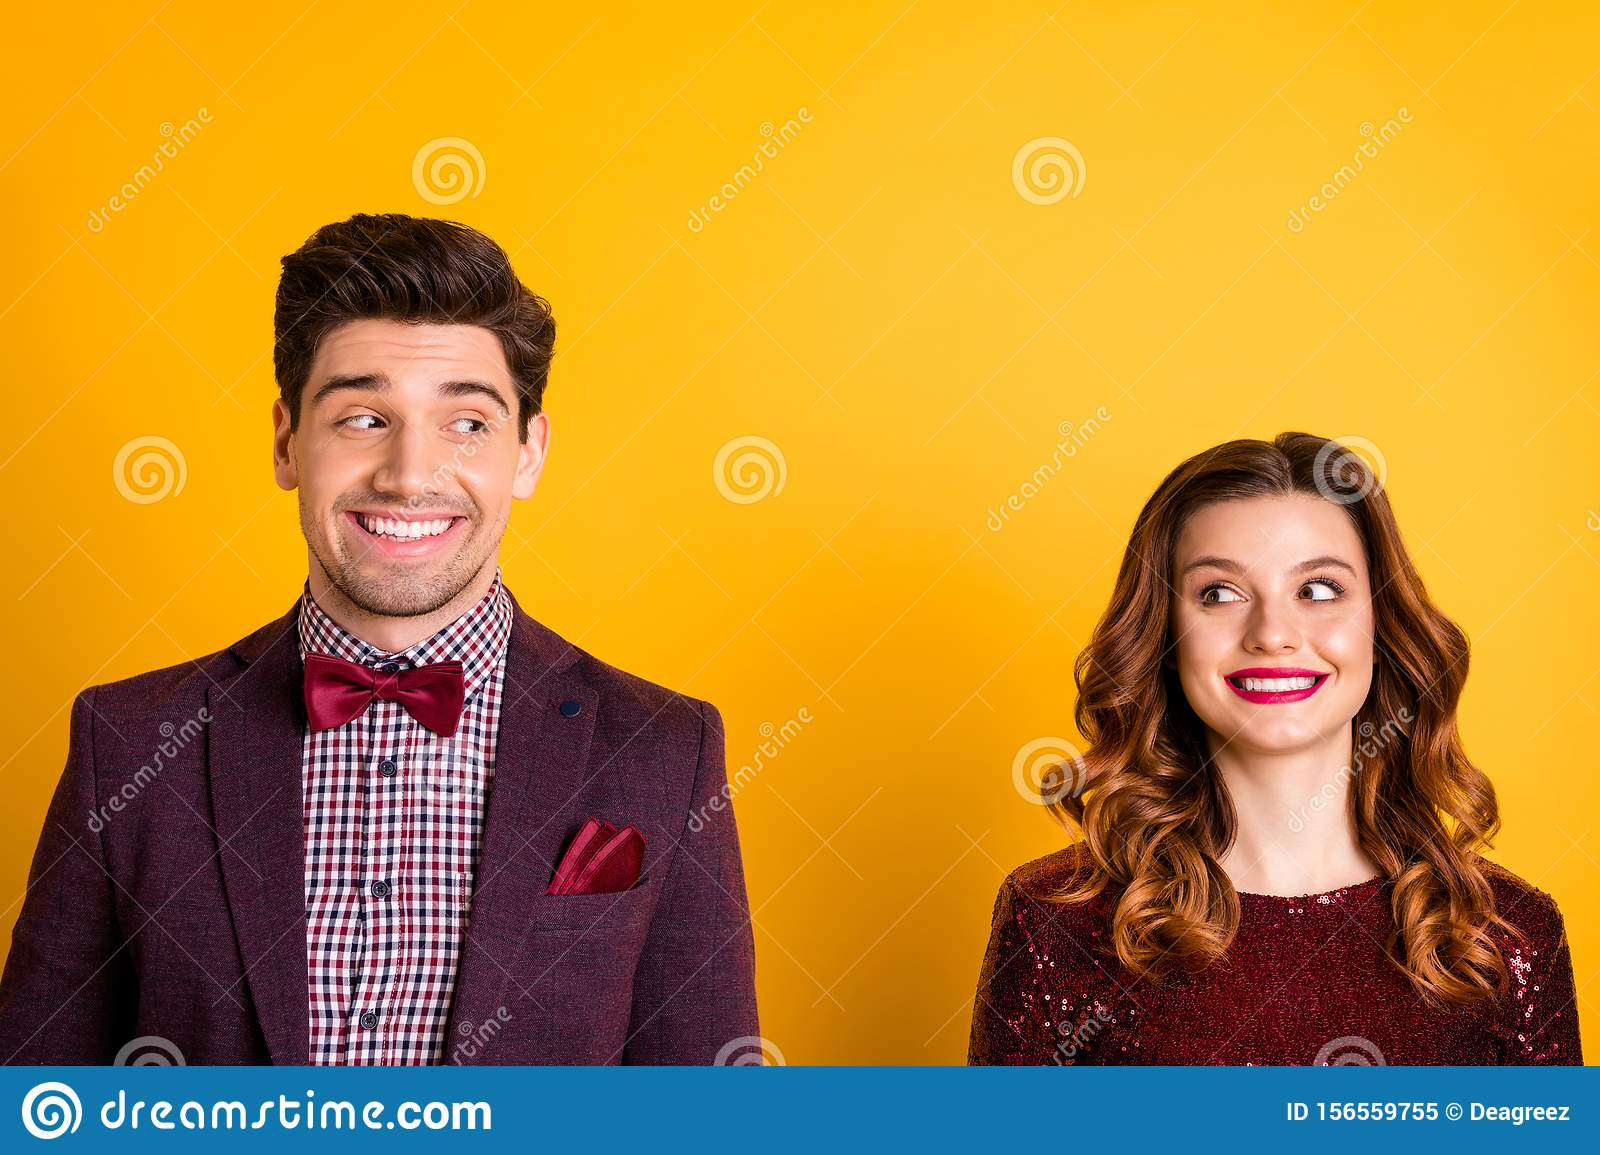 Close-up portrait of his he her she nice-looking attractive charming lovely glamorous cheerful cheery people looking at